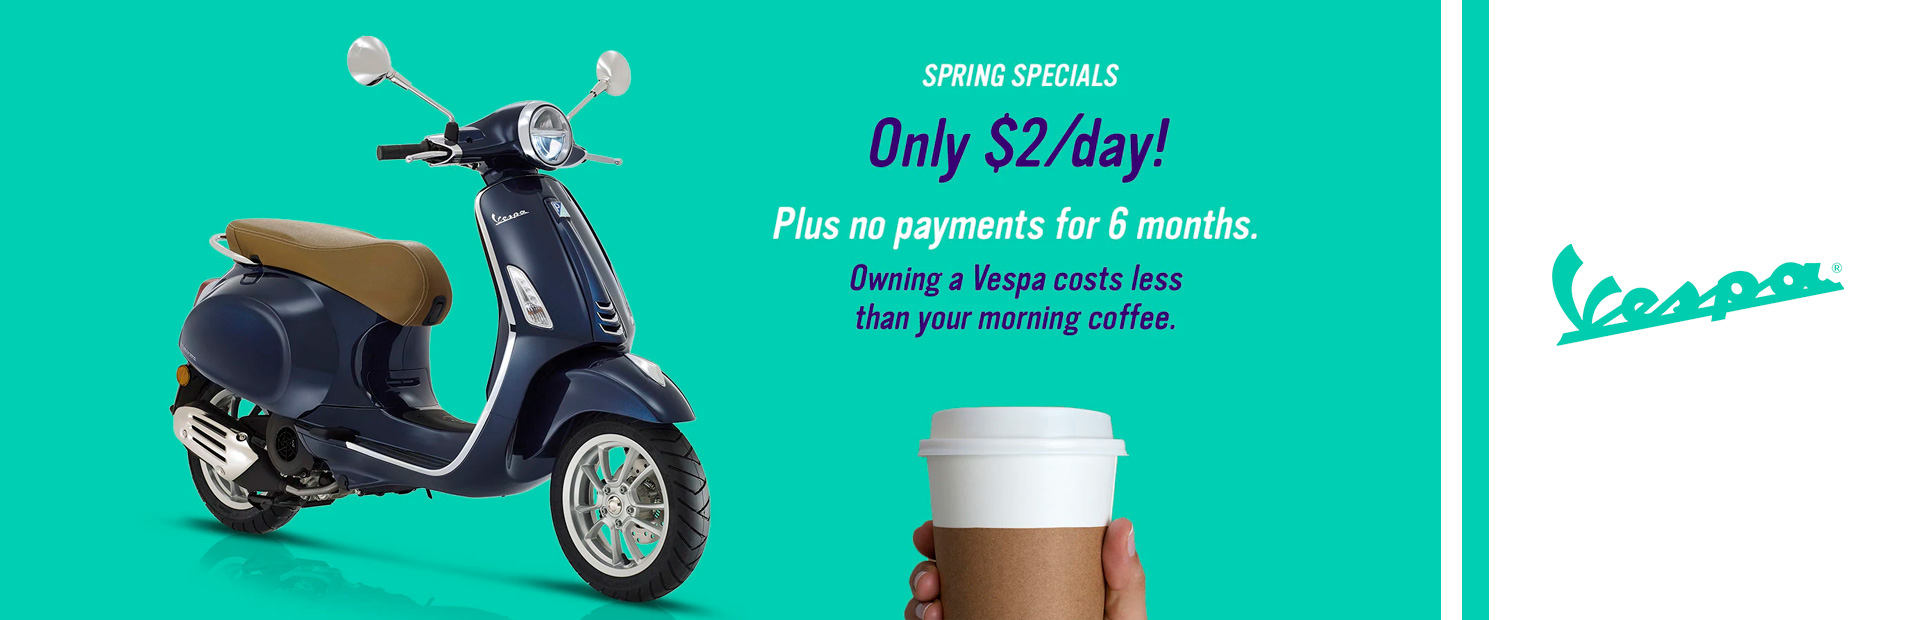 "Vespa: VESPA CAN – APRIL / MAY ""SPRING DAYS"" 2019"